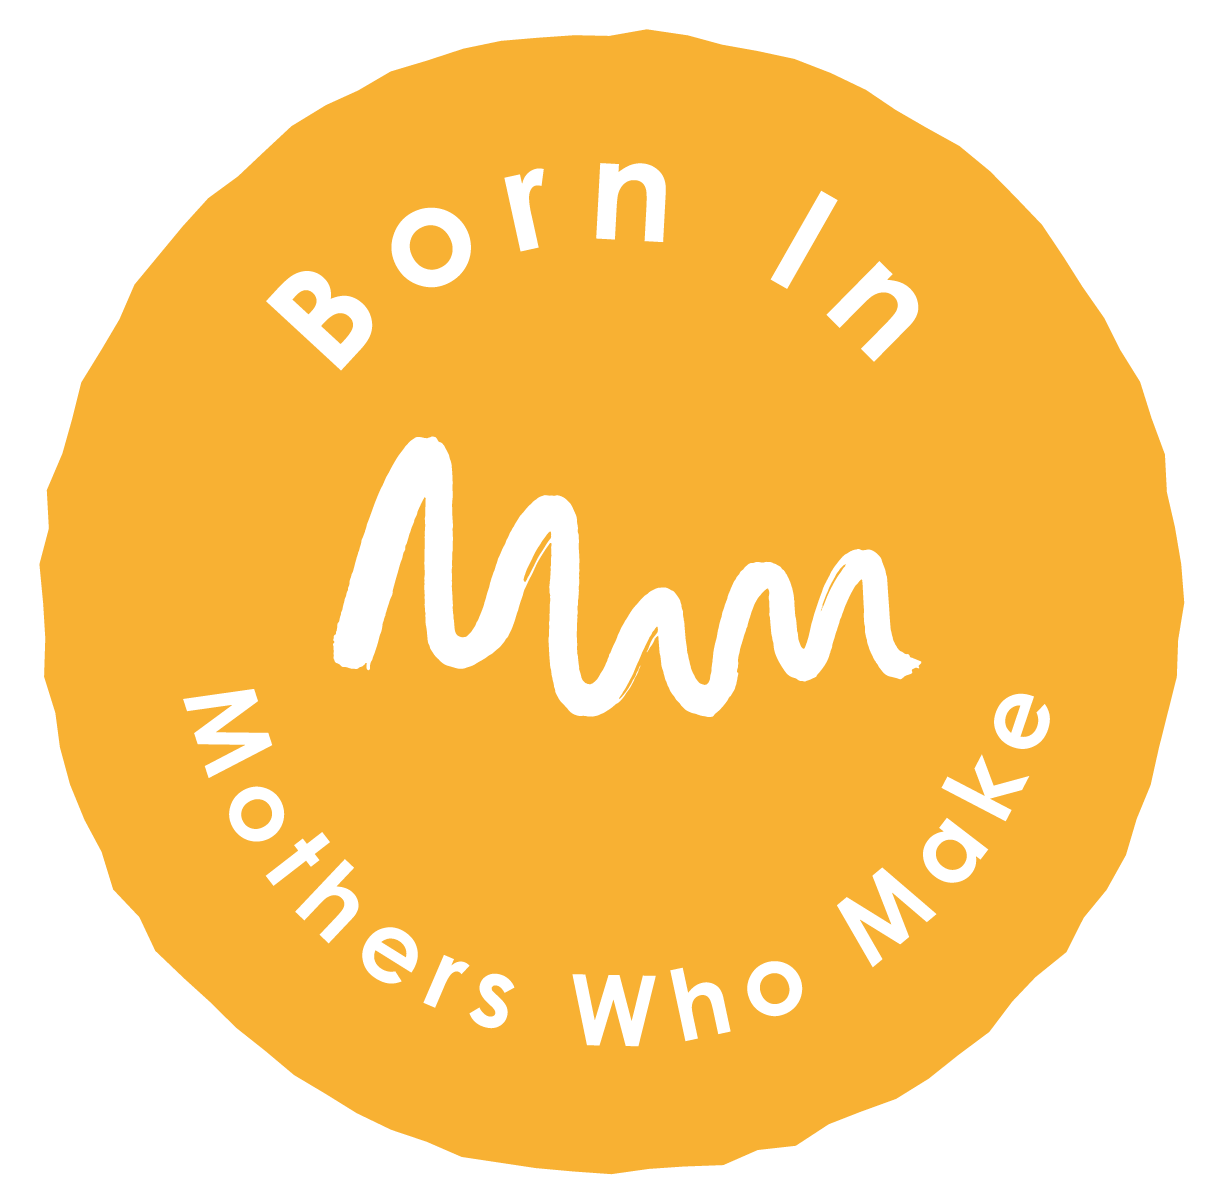 Born in Mothers Who Make logo